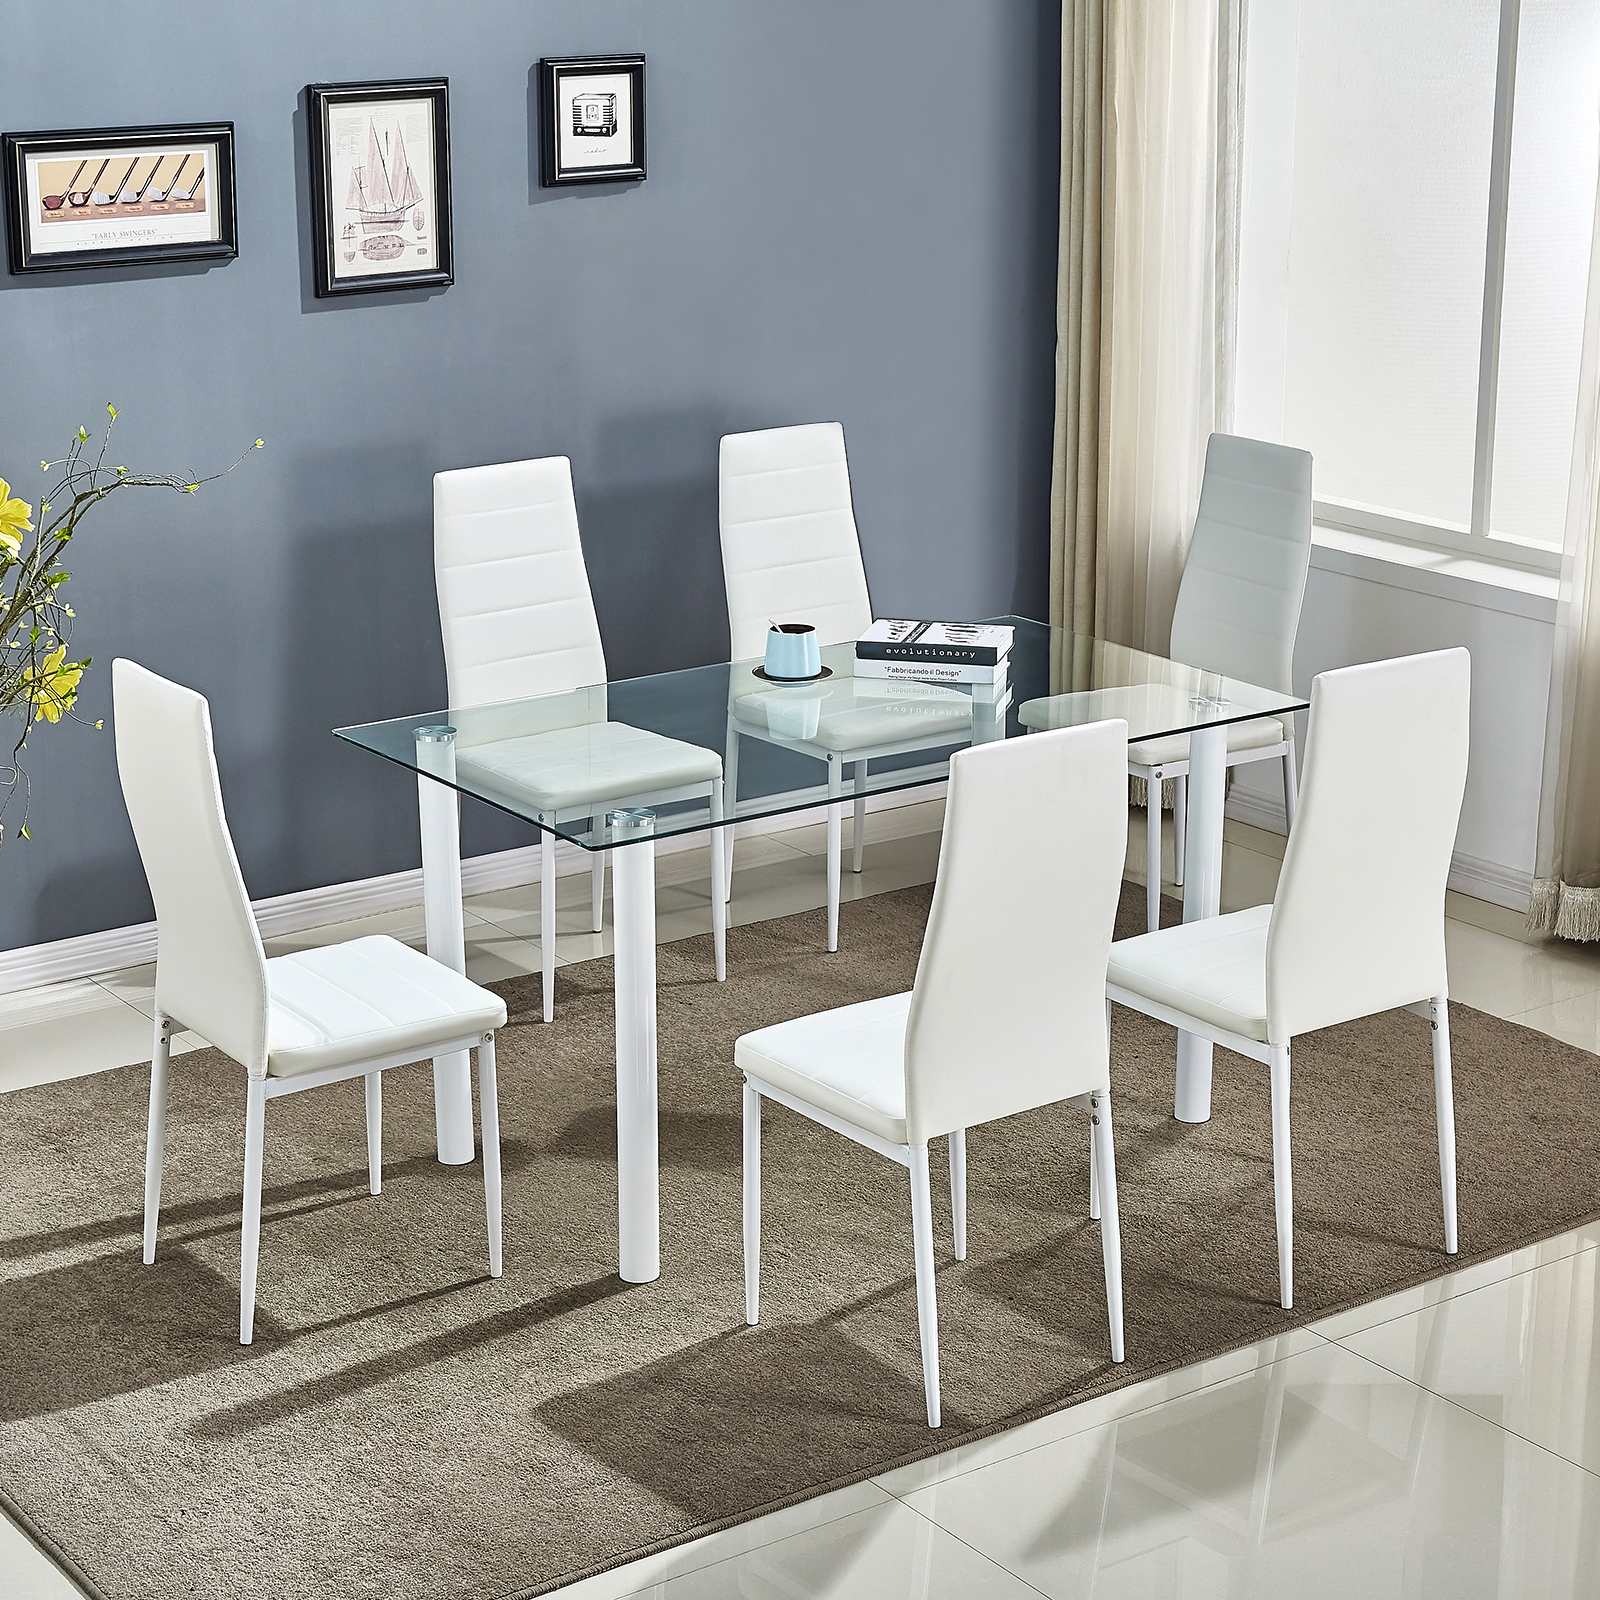 Pleasant Details About Clear Glass Dining Table Set And 6 Faux Leather Chairs Kitchen Furniture White Download Free Architecture Designs Scobabritishbridgeorg